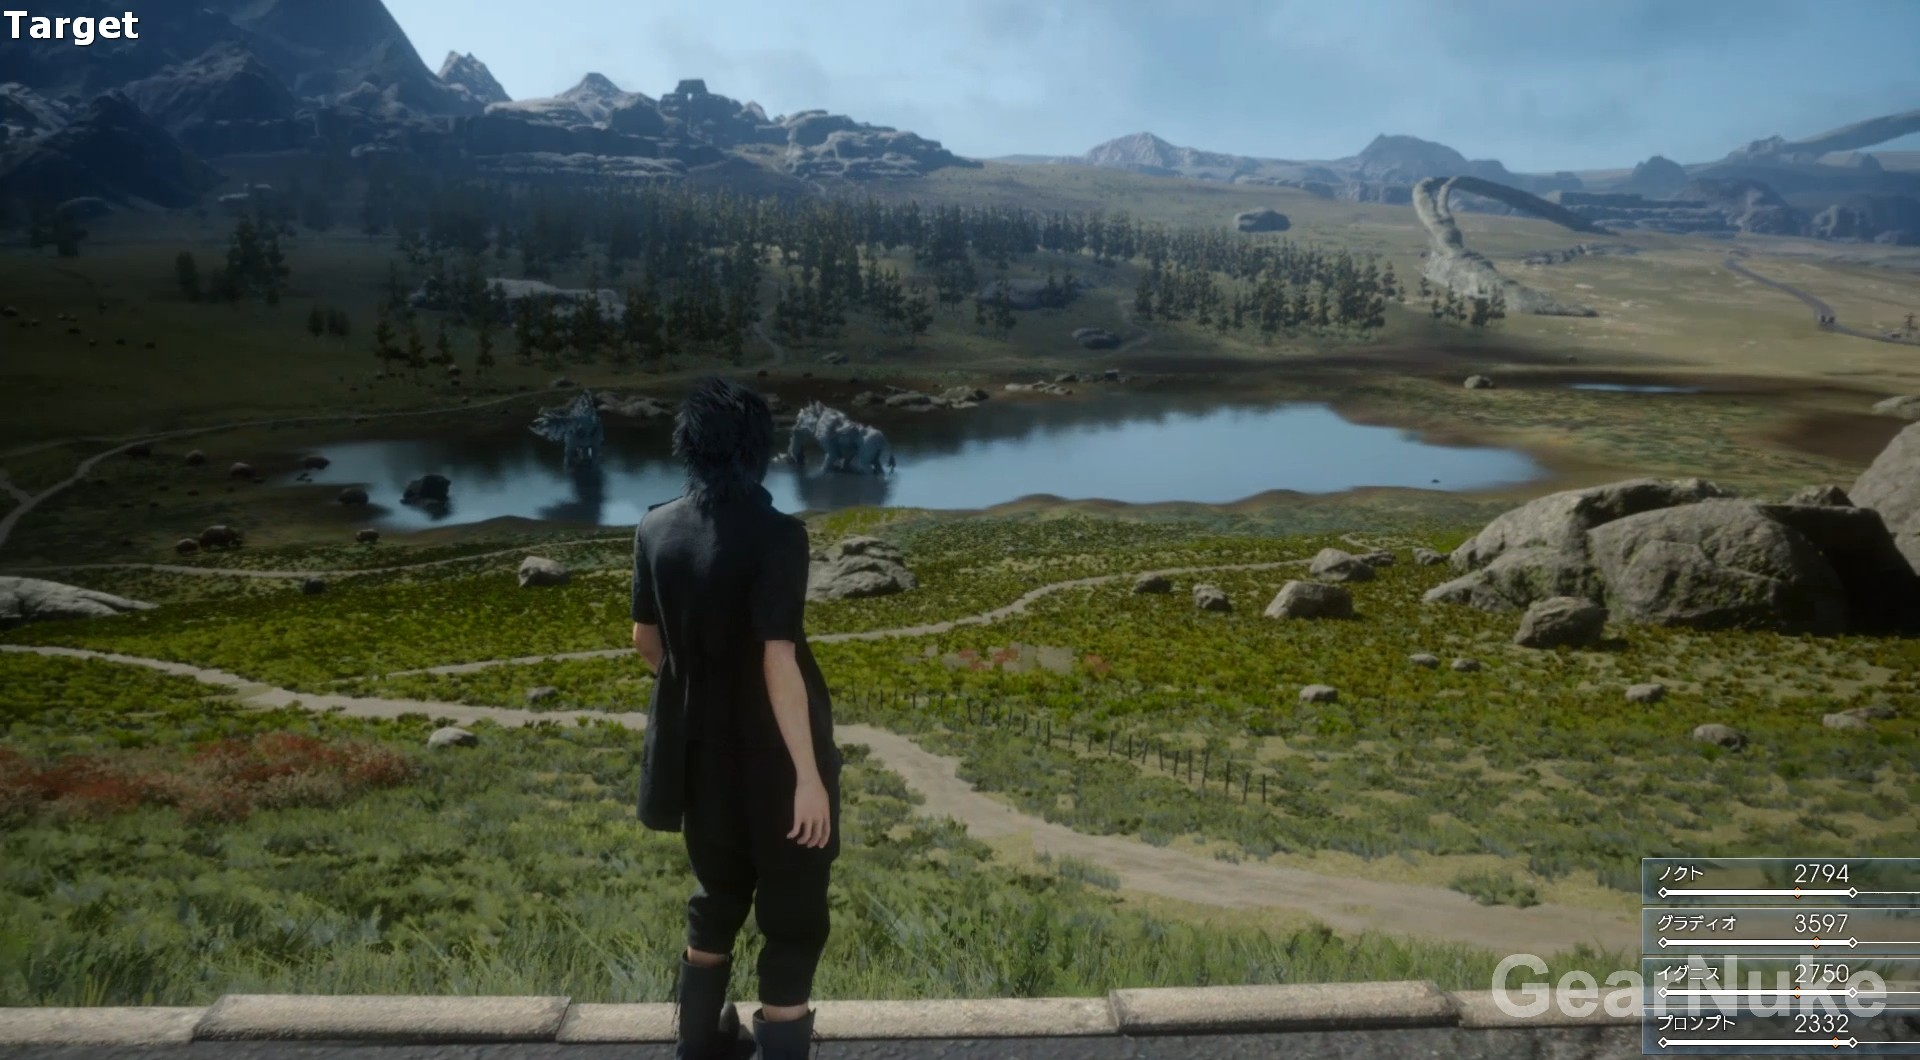 Final Fantasy XV Target Build Vs PS4 Demo Comparison Shows How The Engine Scales To Consoles